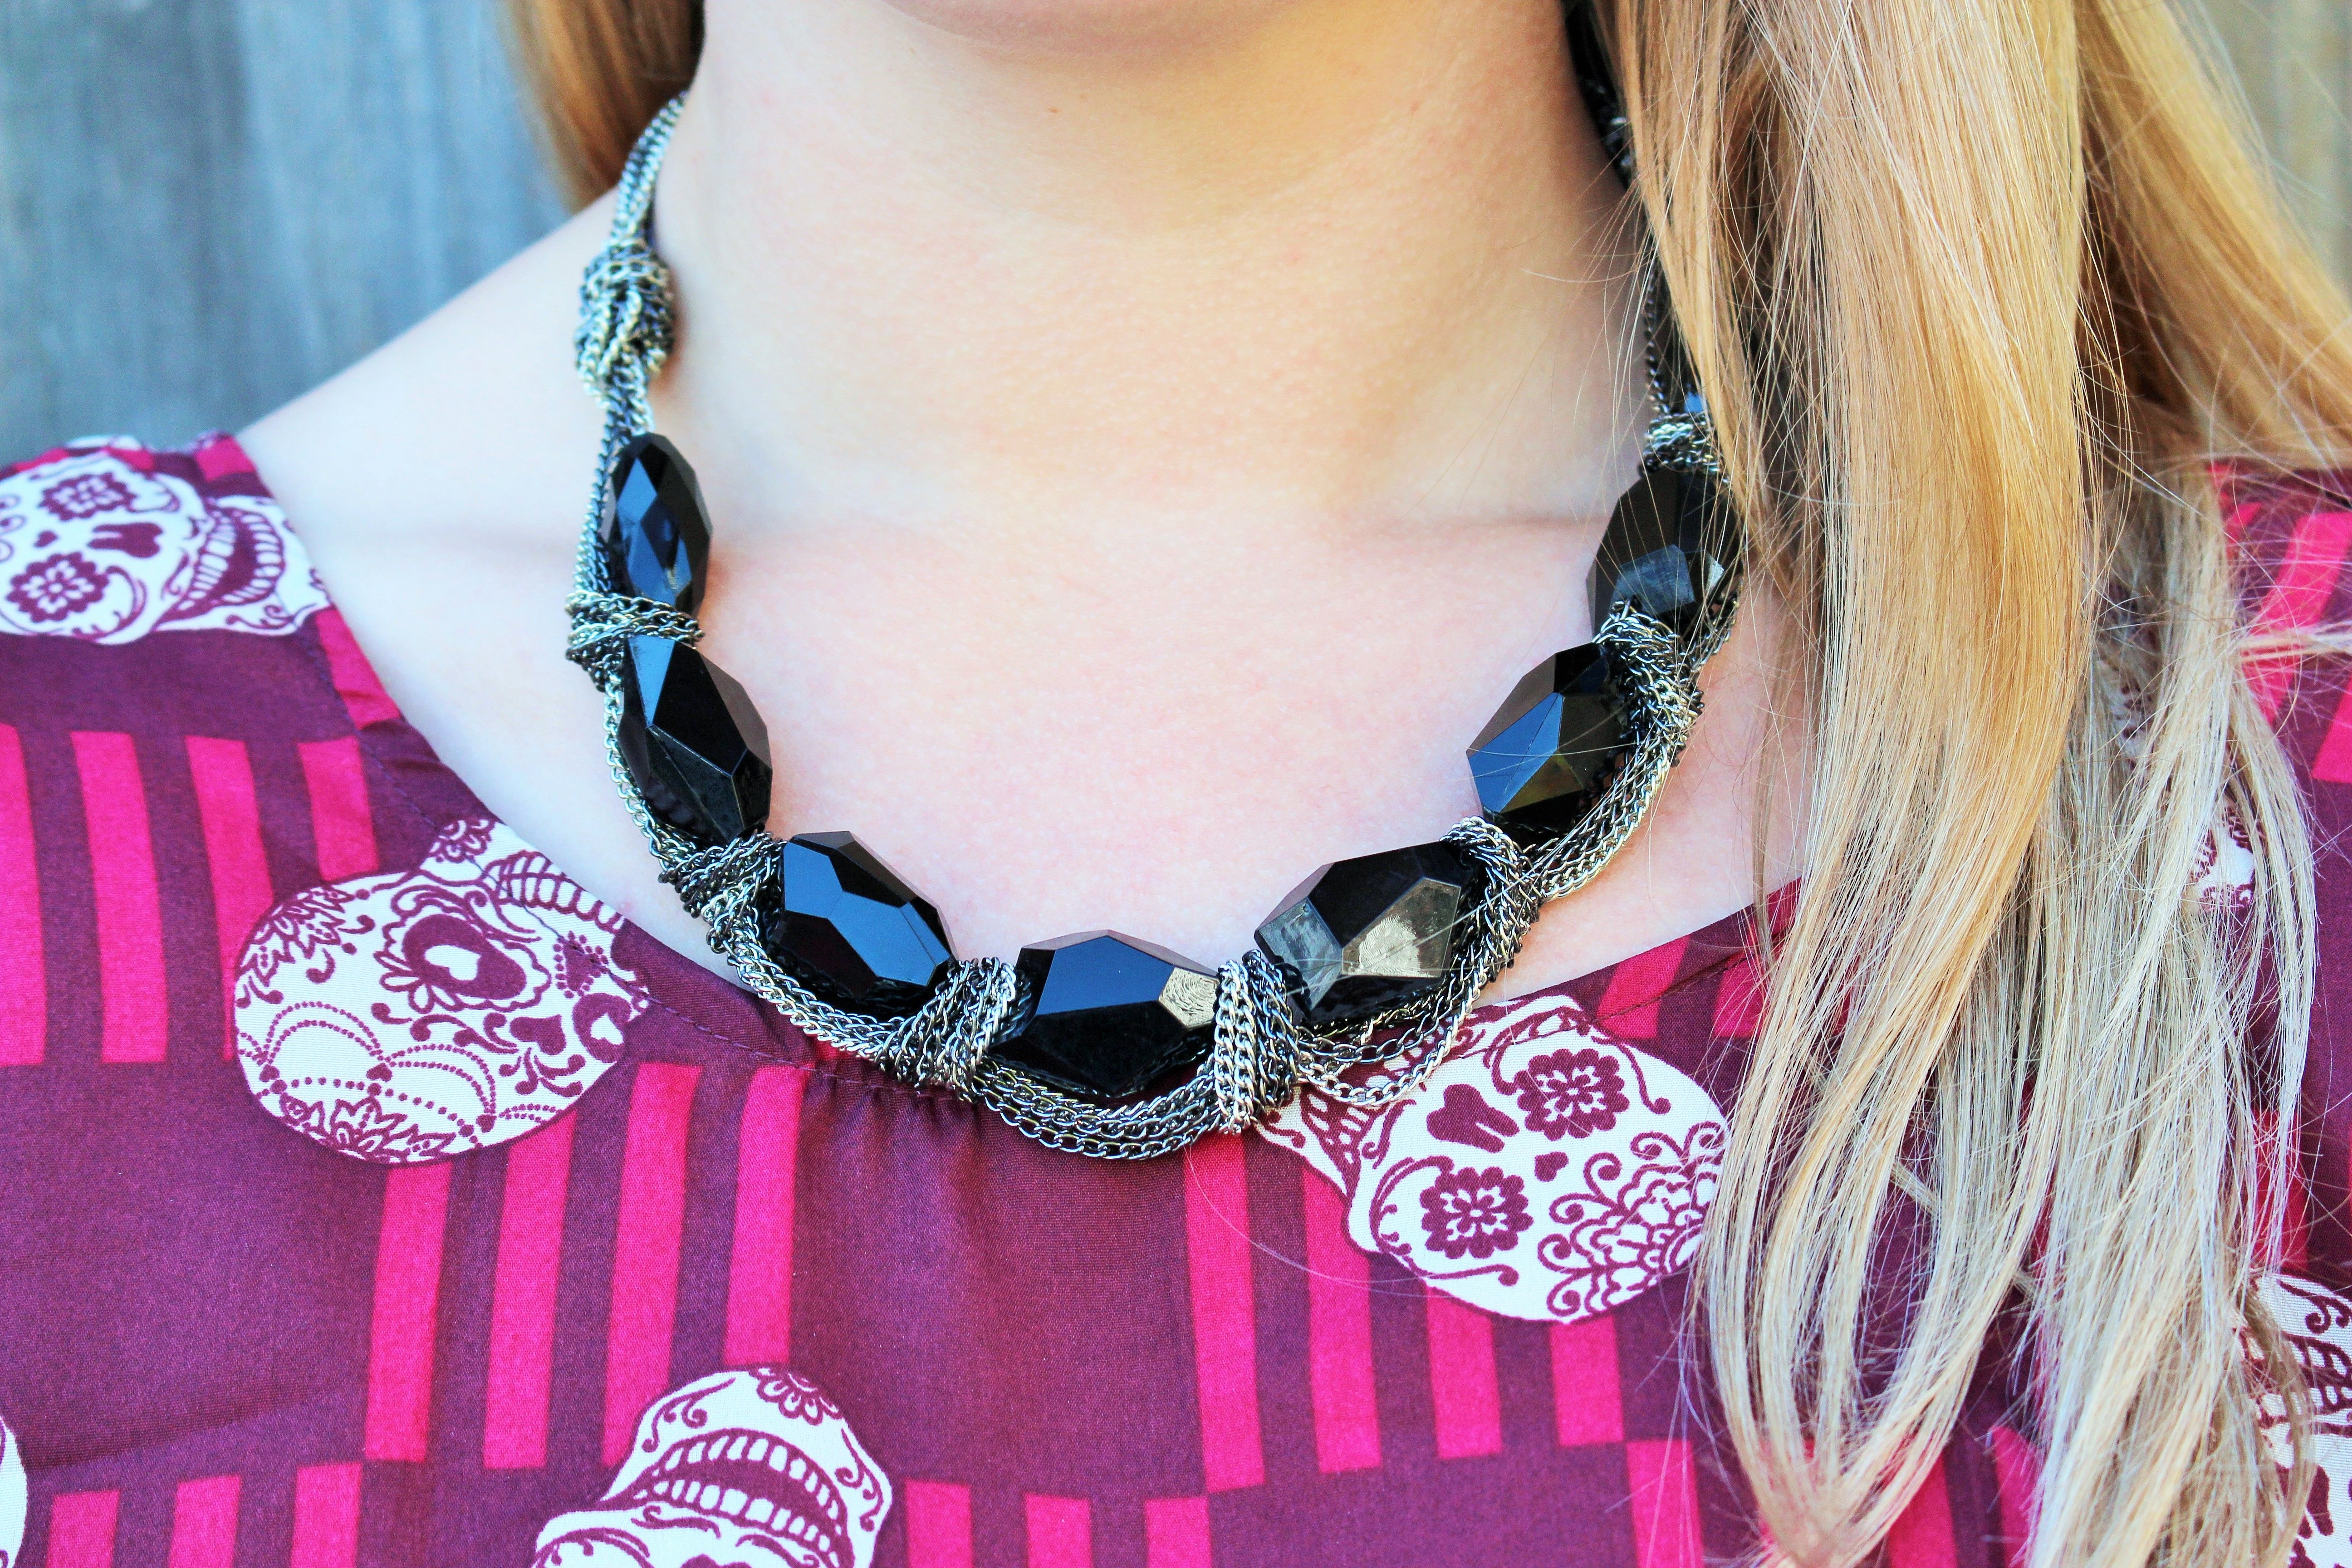 Halloween themed Look of the Week: Spooky Chic featuring the Cate & Chloe Cassandra Statement Necklace and C&C Shamballa pave crystal bracelets! #fashion #women #jewelry #accessories www.cateandchloe.com